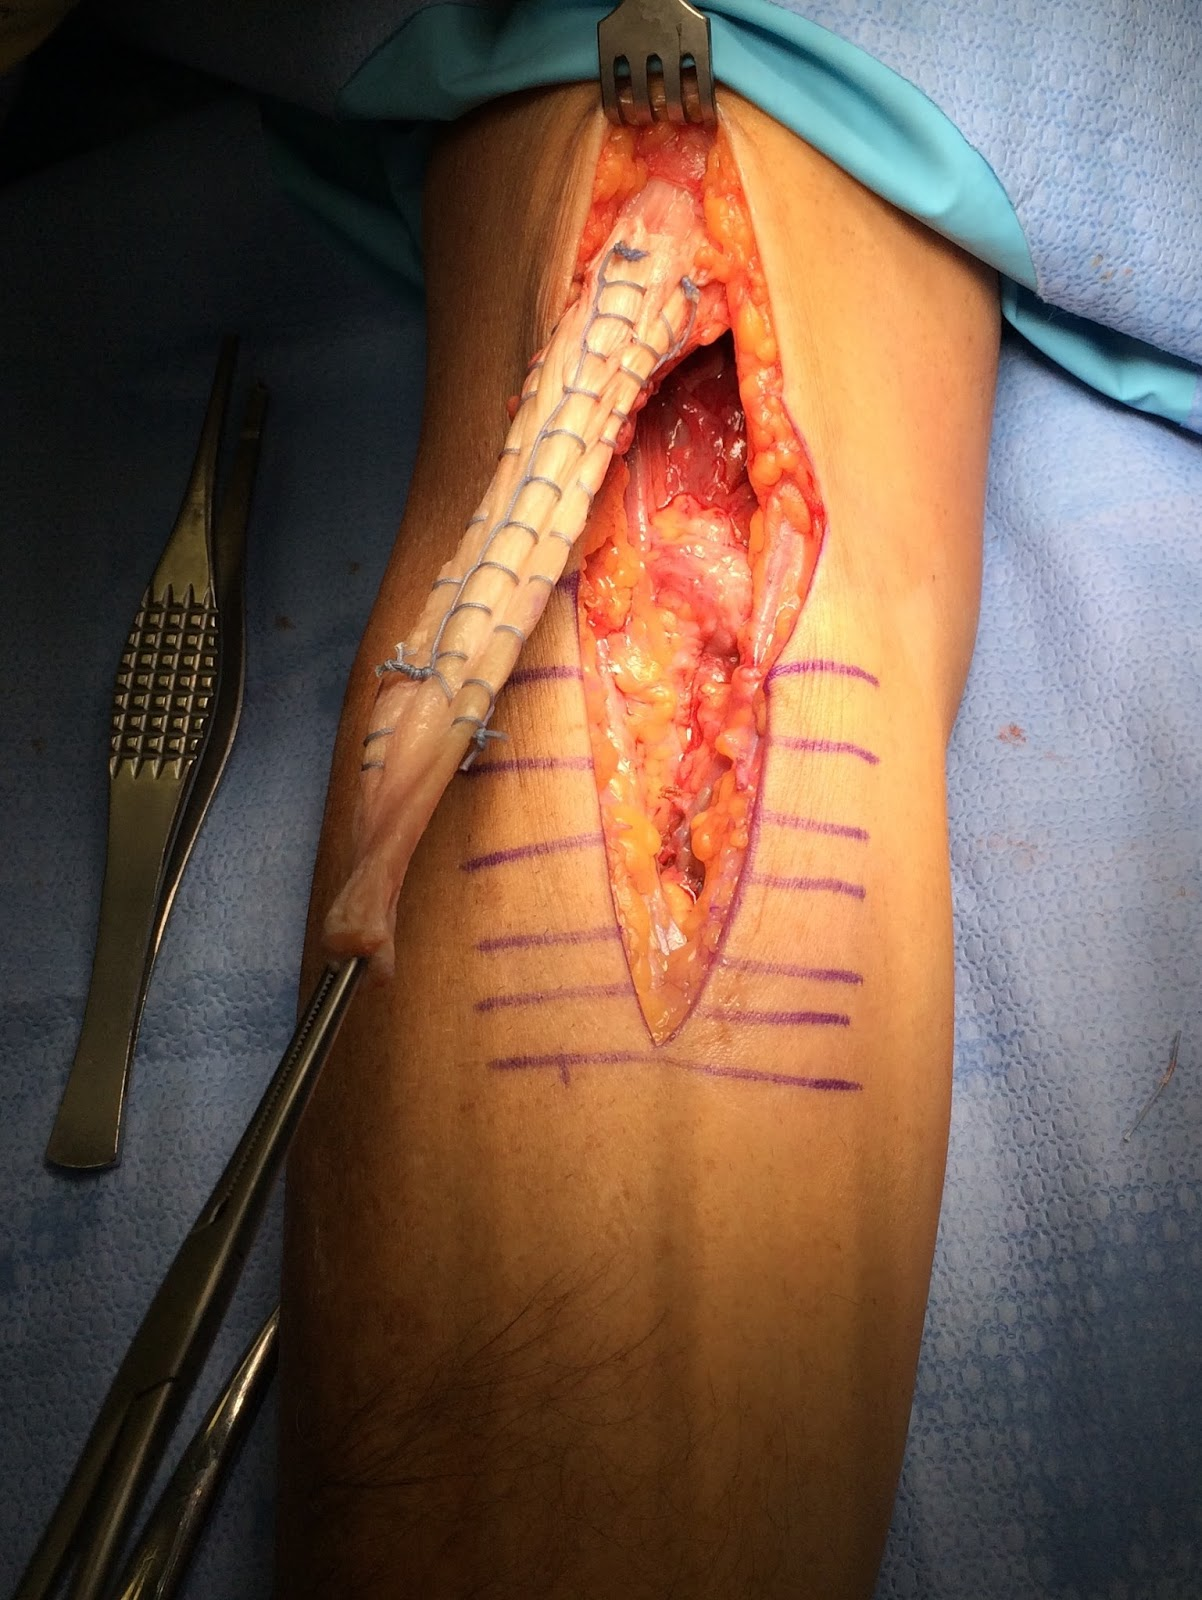 Dr Frisella Shoulder Surgery Distal Biceps Repair With